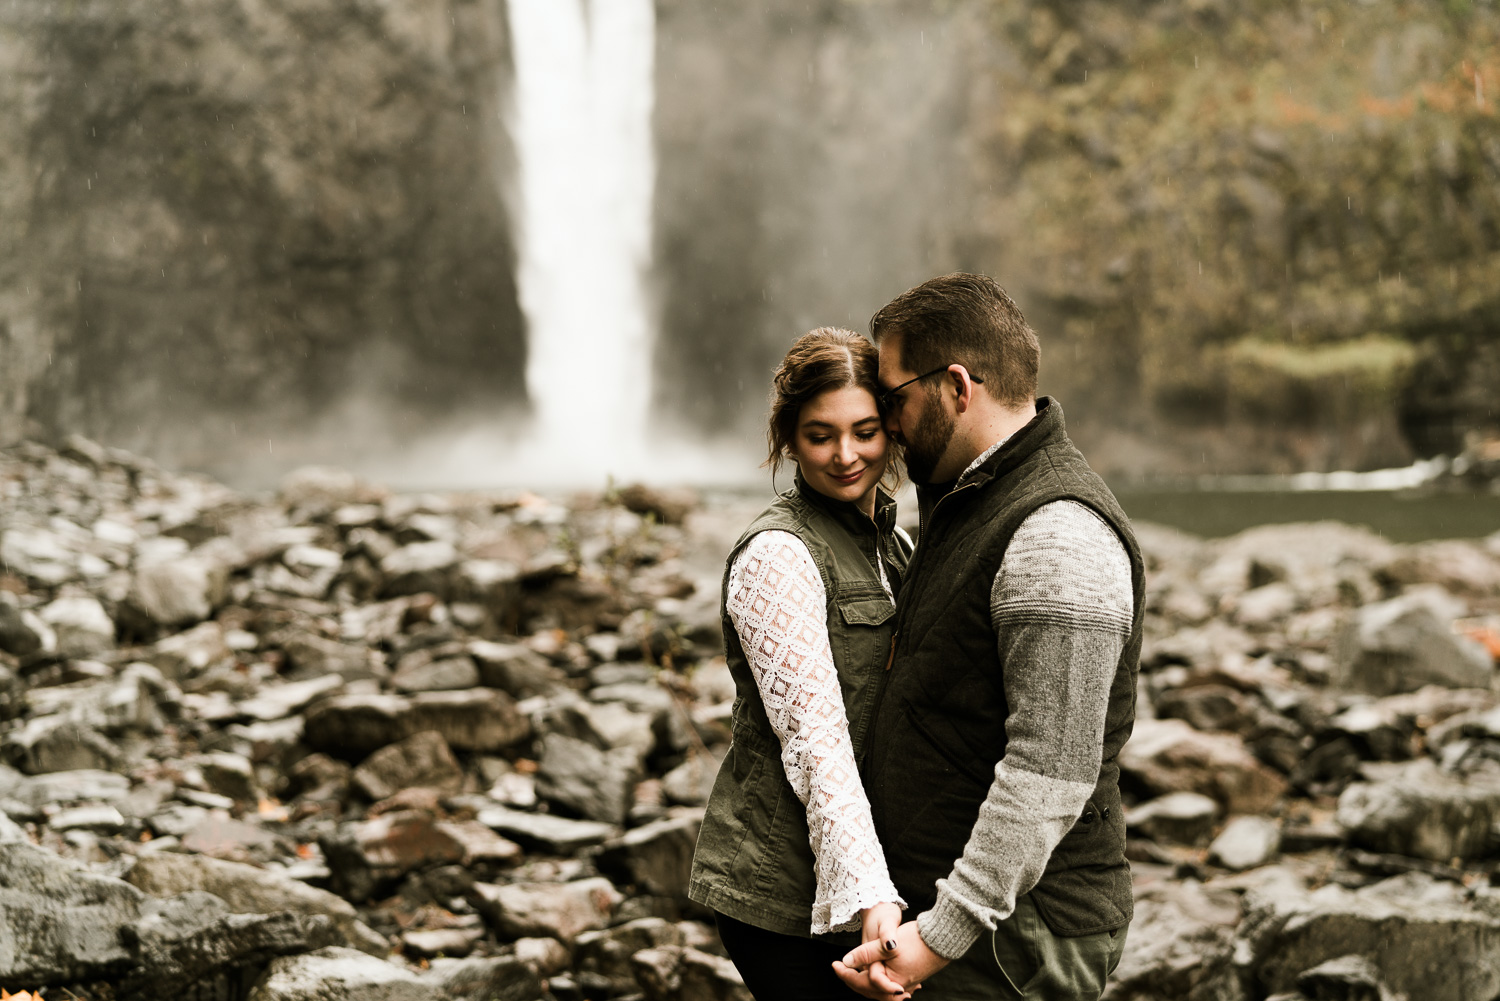 A Picturesque PNW Engagement Session | Snoqualmie Falls | Seattle Wedding photographer-7.jpg